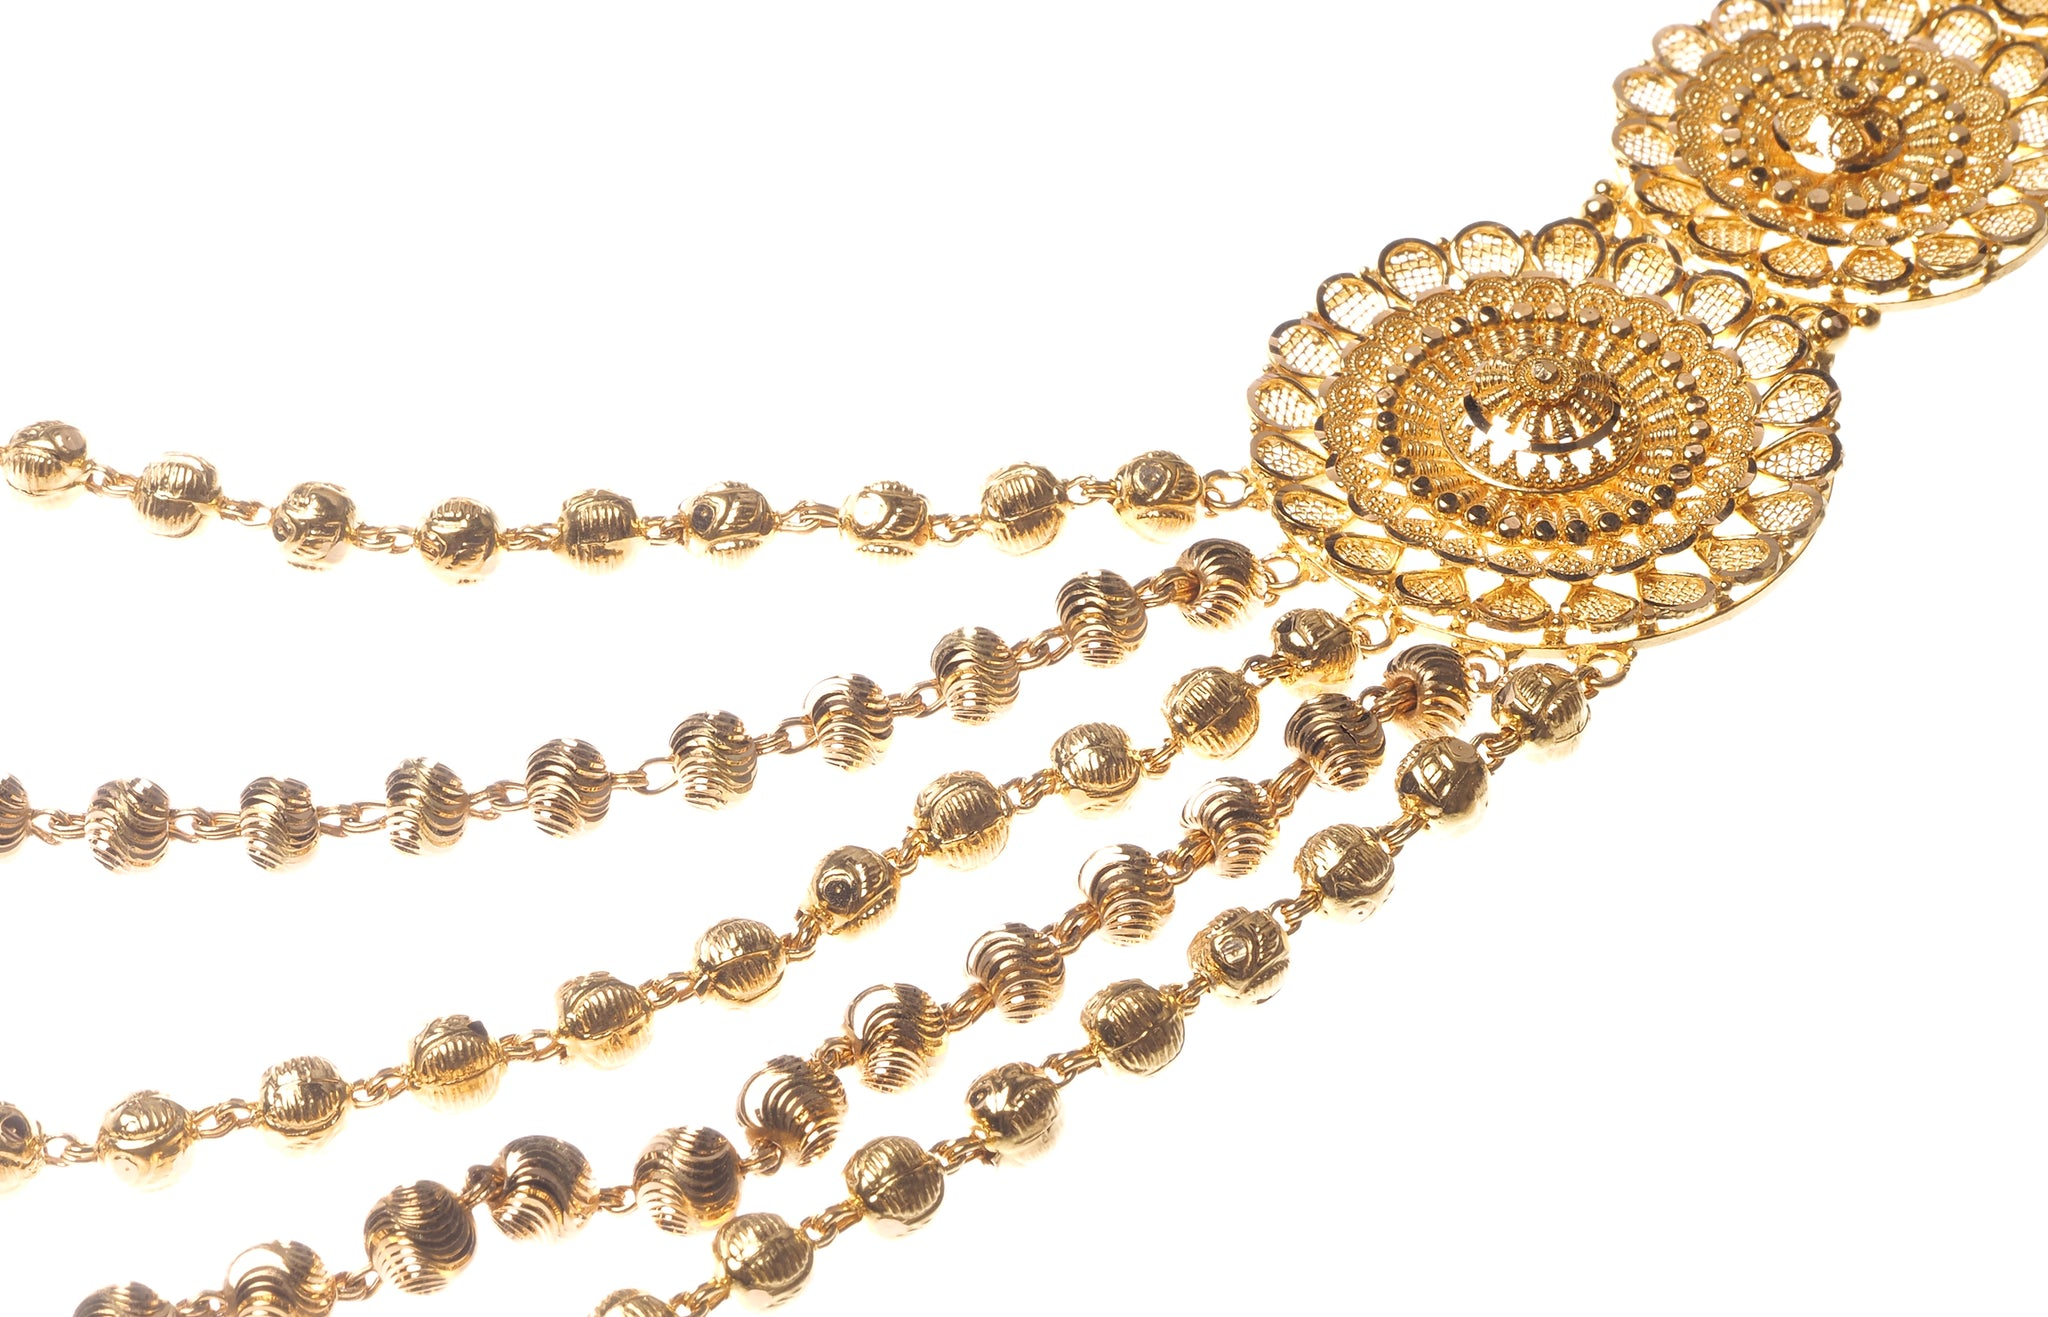 22ct Gold Necklace & Earring Bridal Set | Rani Haar | Patta with filigree and diamond cut bead design (150.2g) N&E-5929